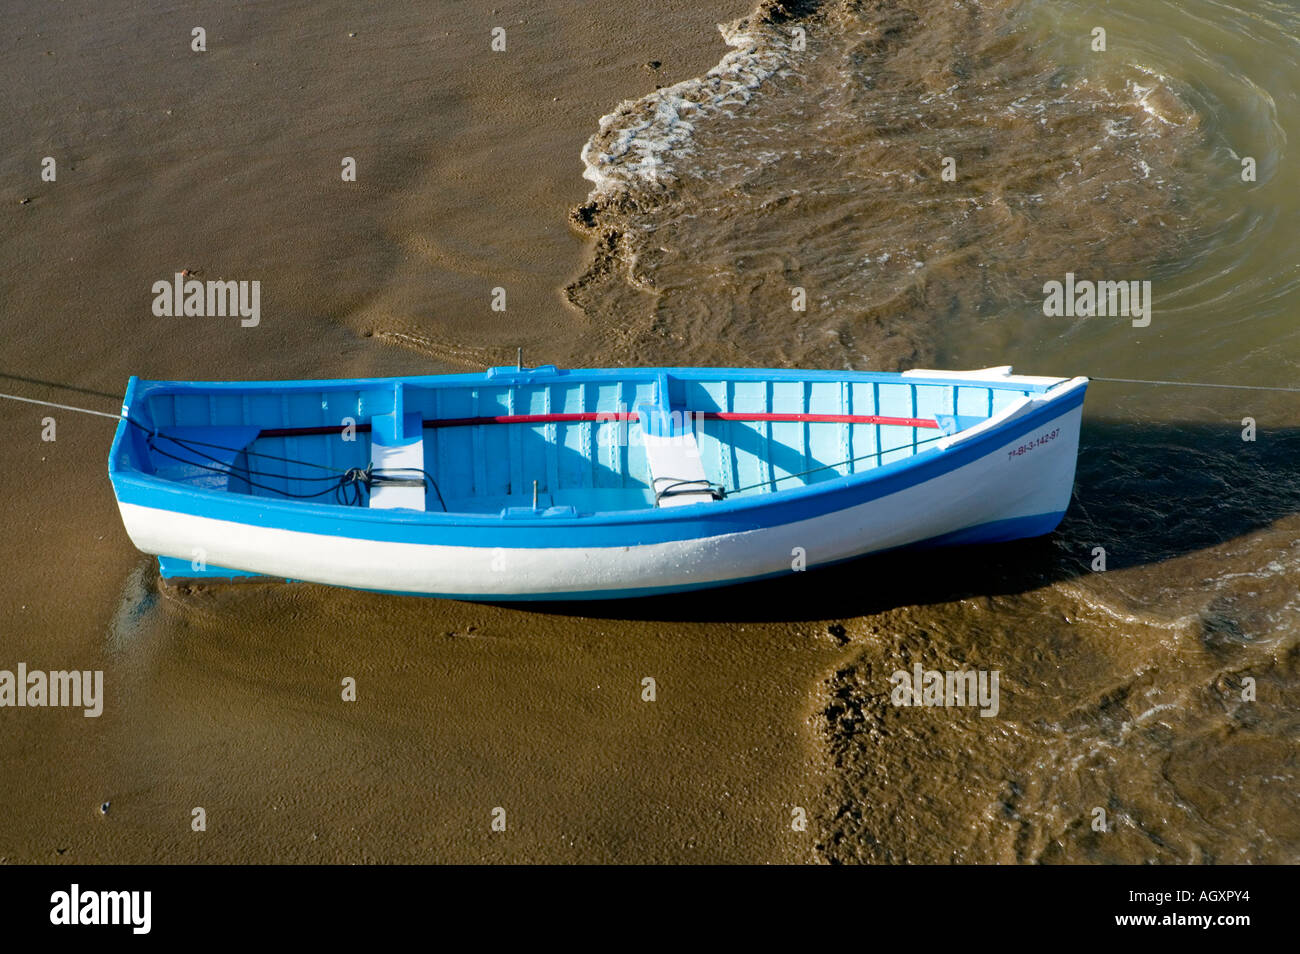 Blue and white rowing boat at mooring in harbour Puerto Viejo de Algorta Basque Country Spain - Stock Image